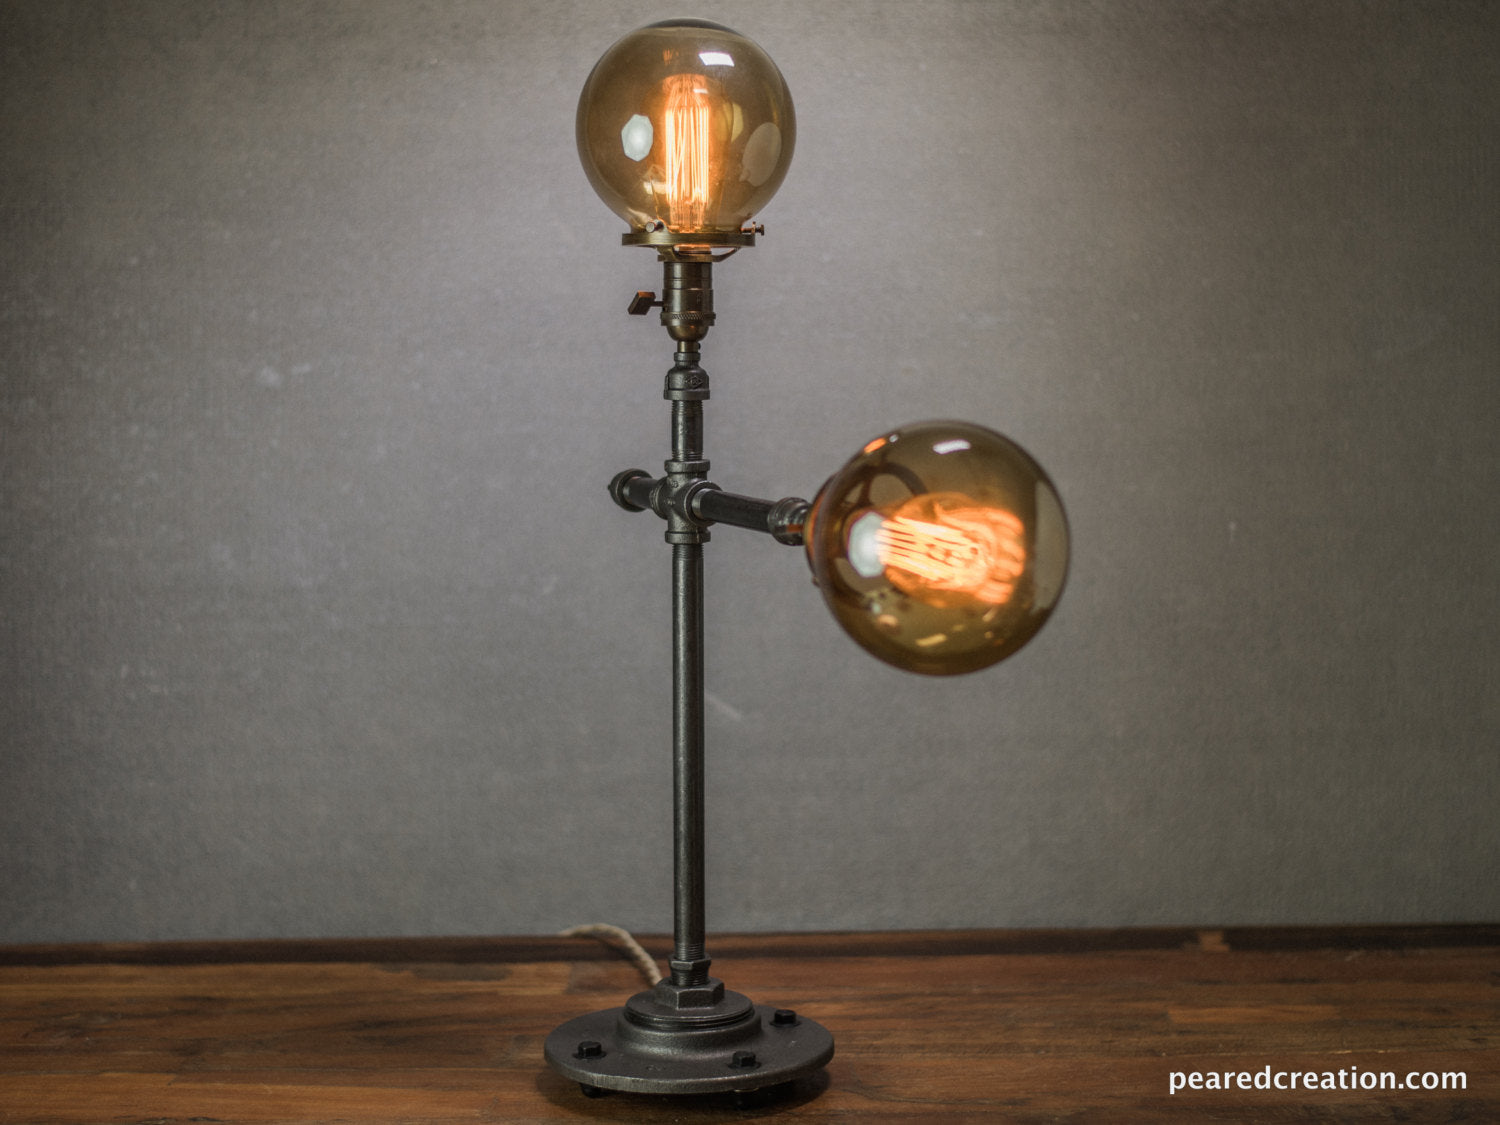 Table Lamp Model No 0505 Peared Creation